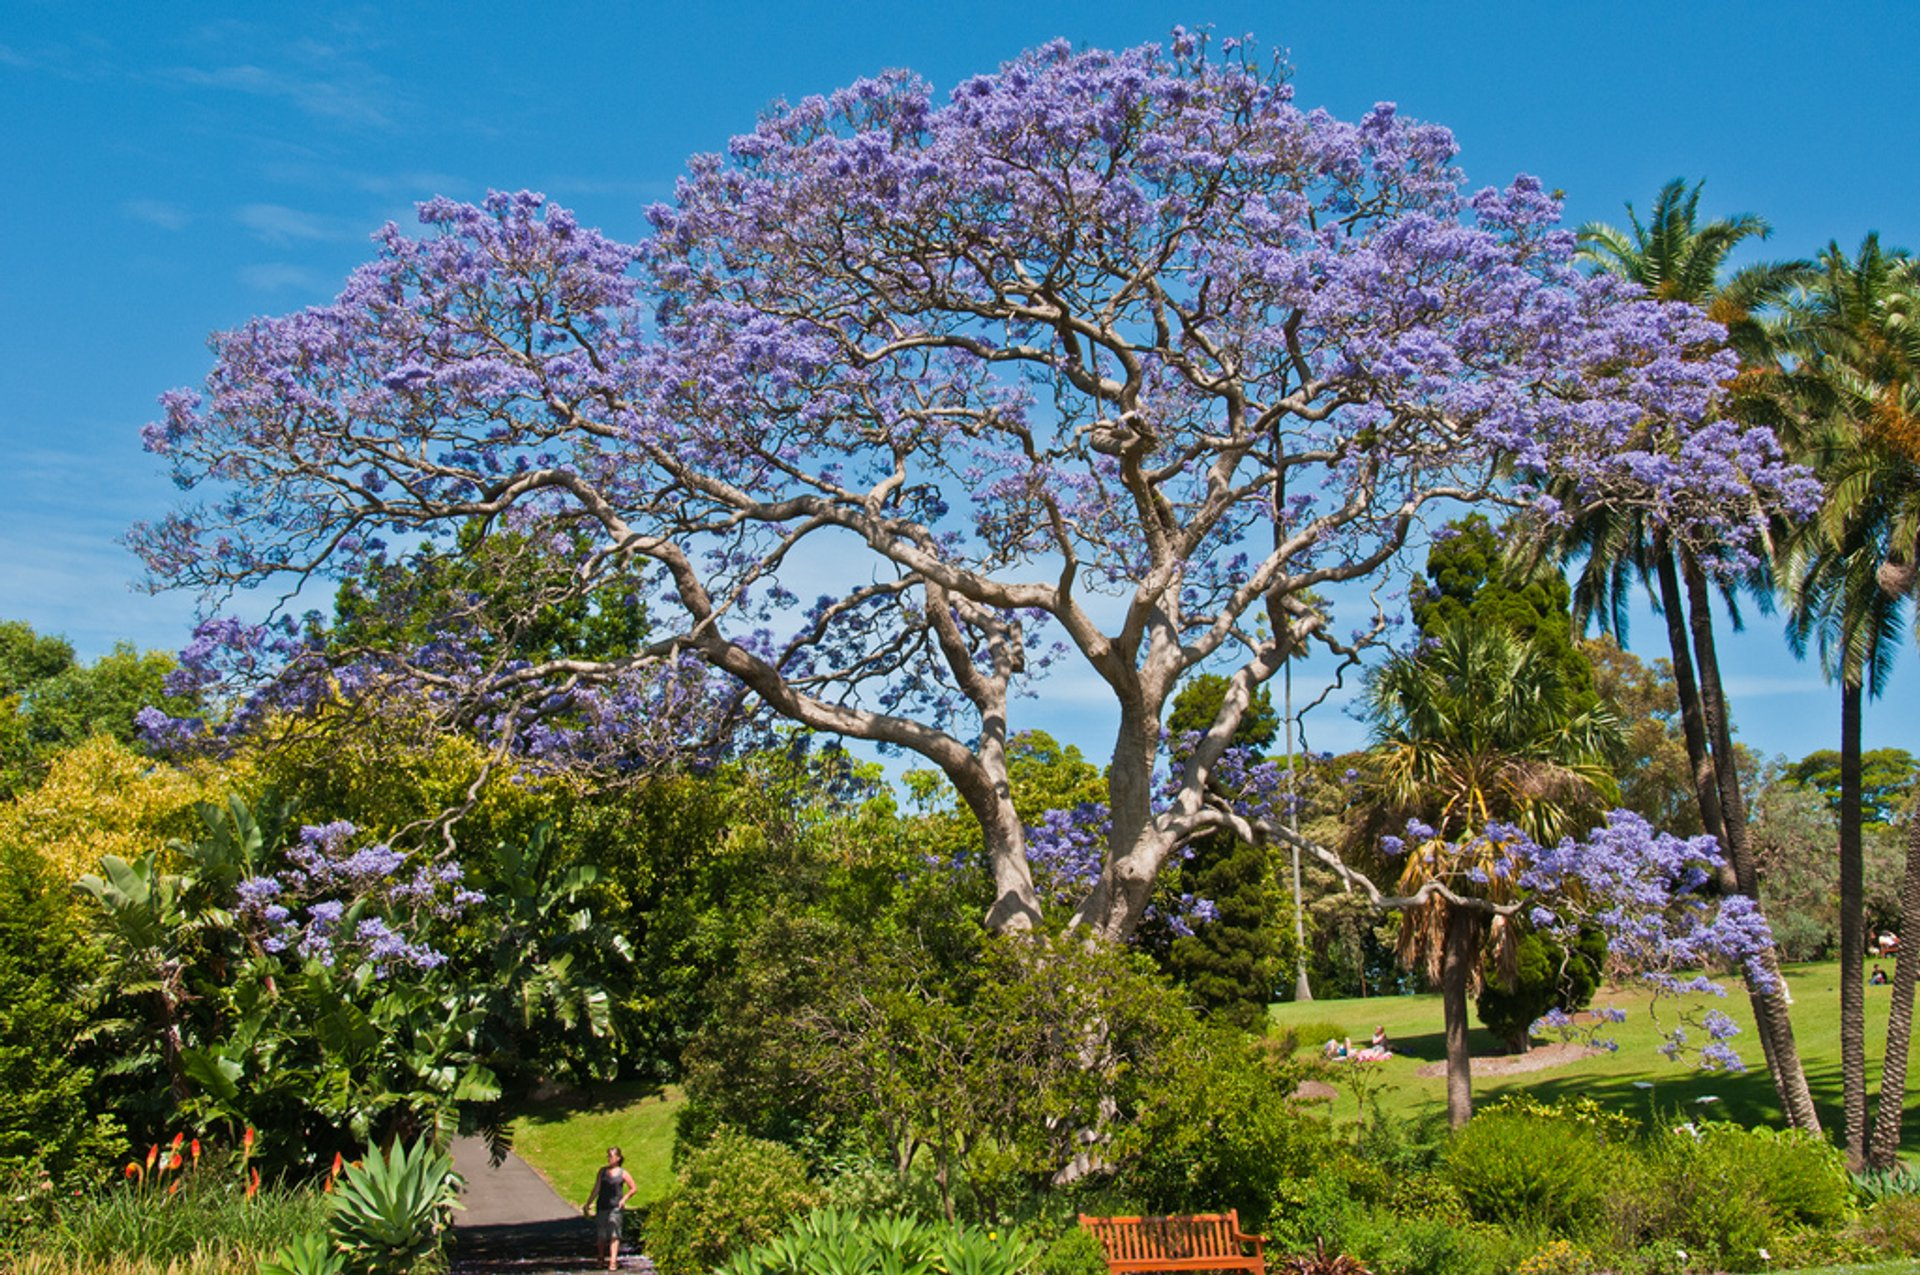 Jacaranda Trees in Bloom in Sydney 2020 - Best Time